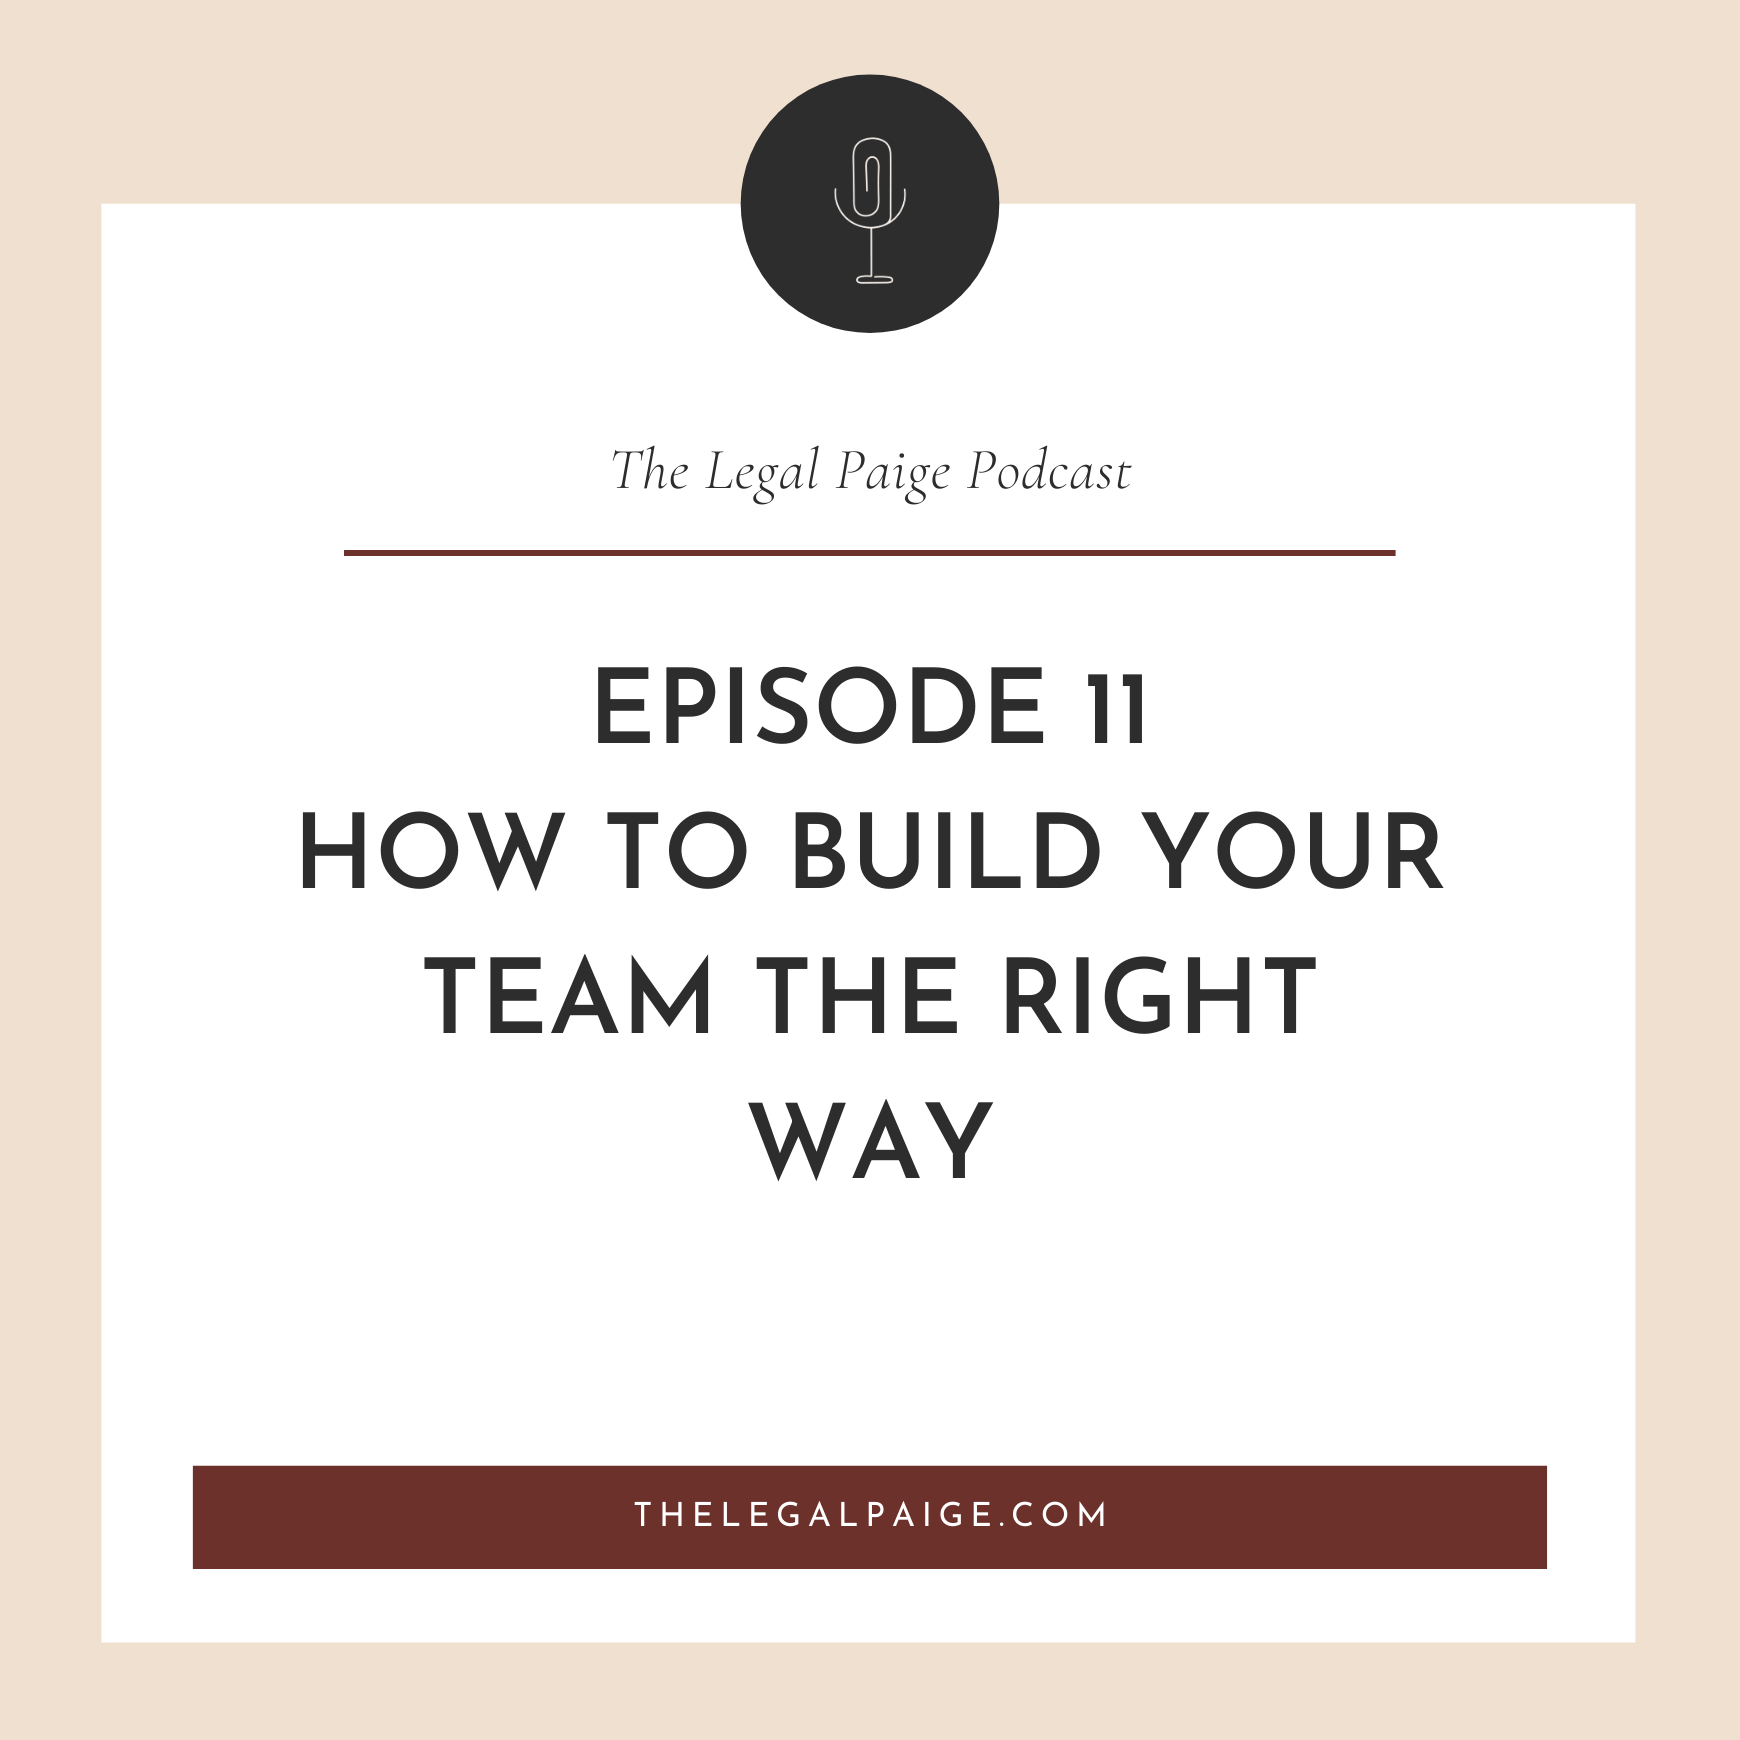 Episode 11: How to build your Team the RIGHT way